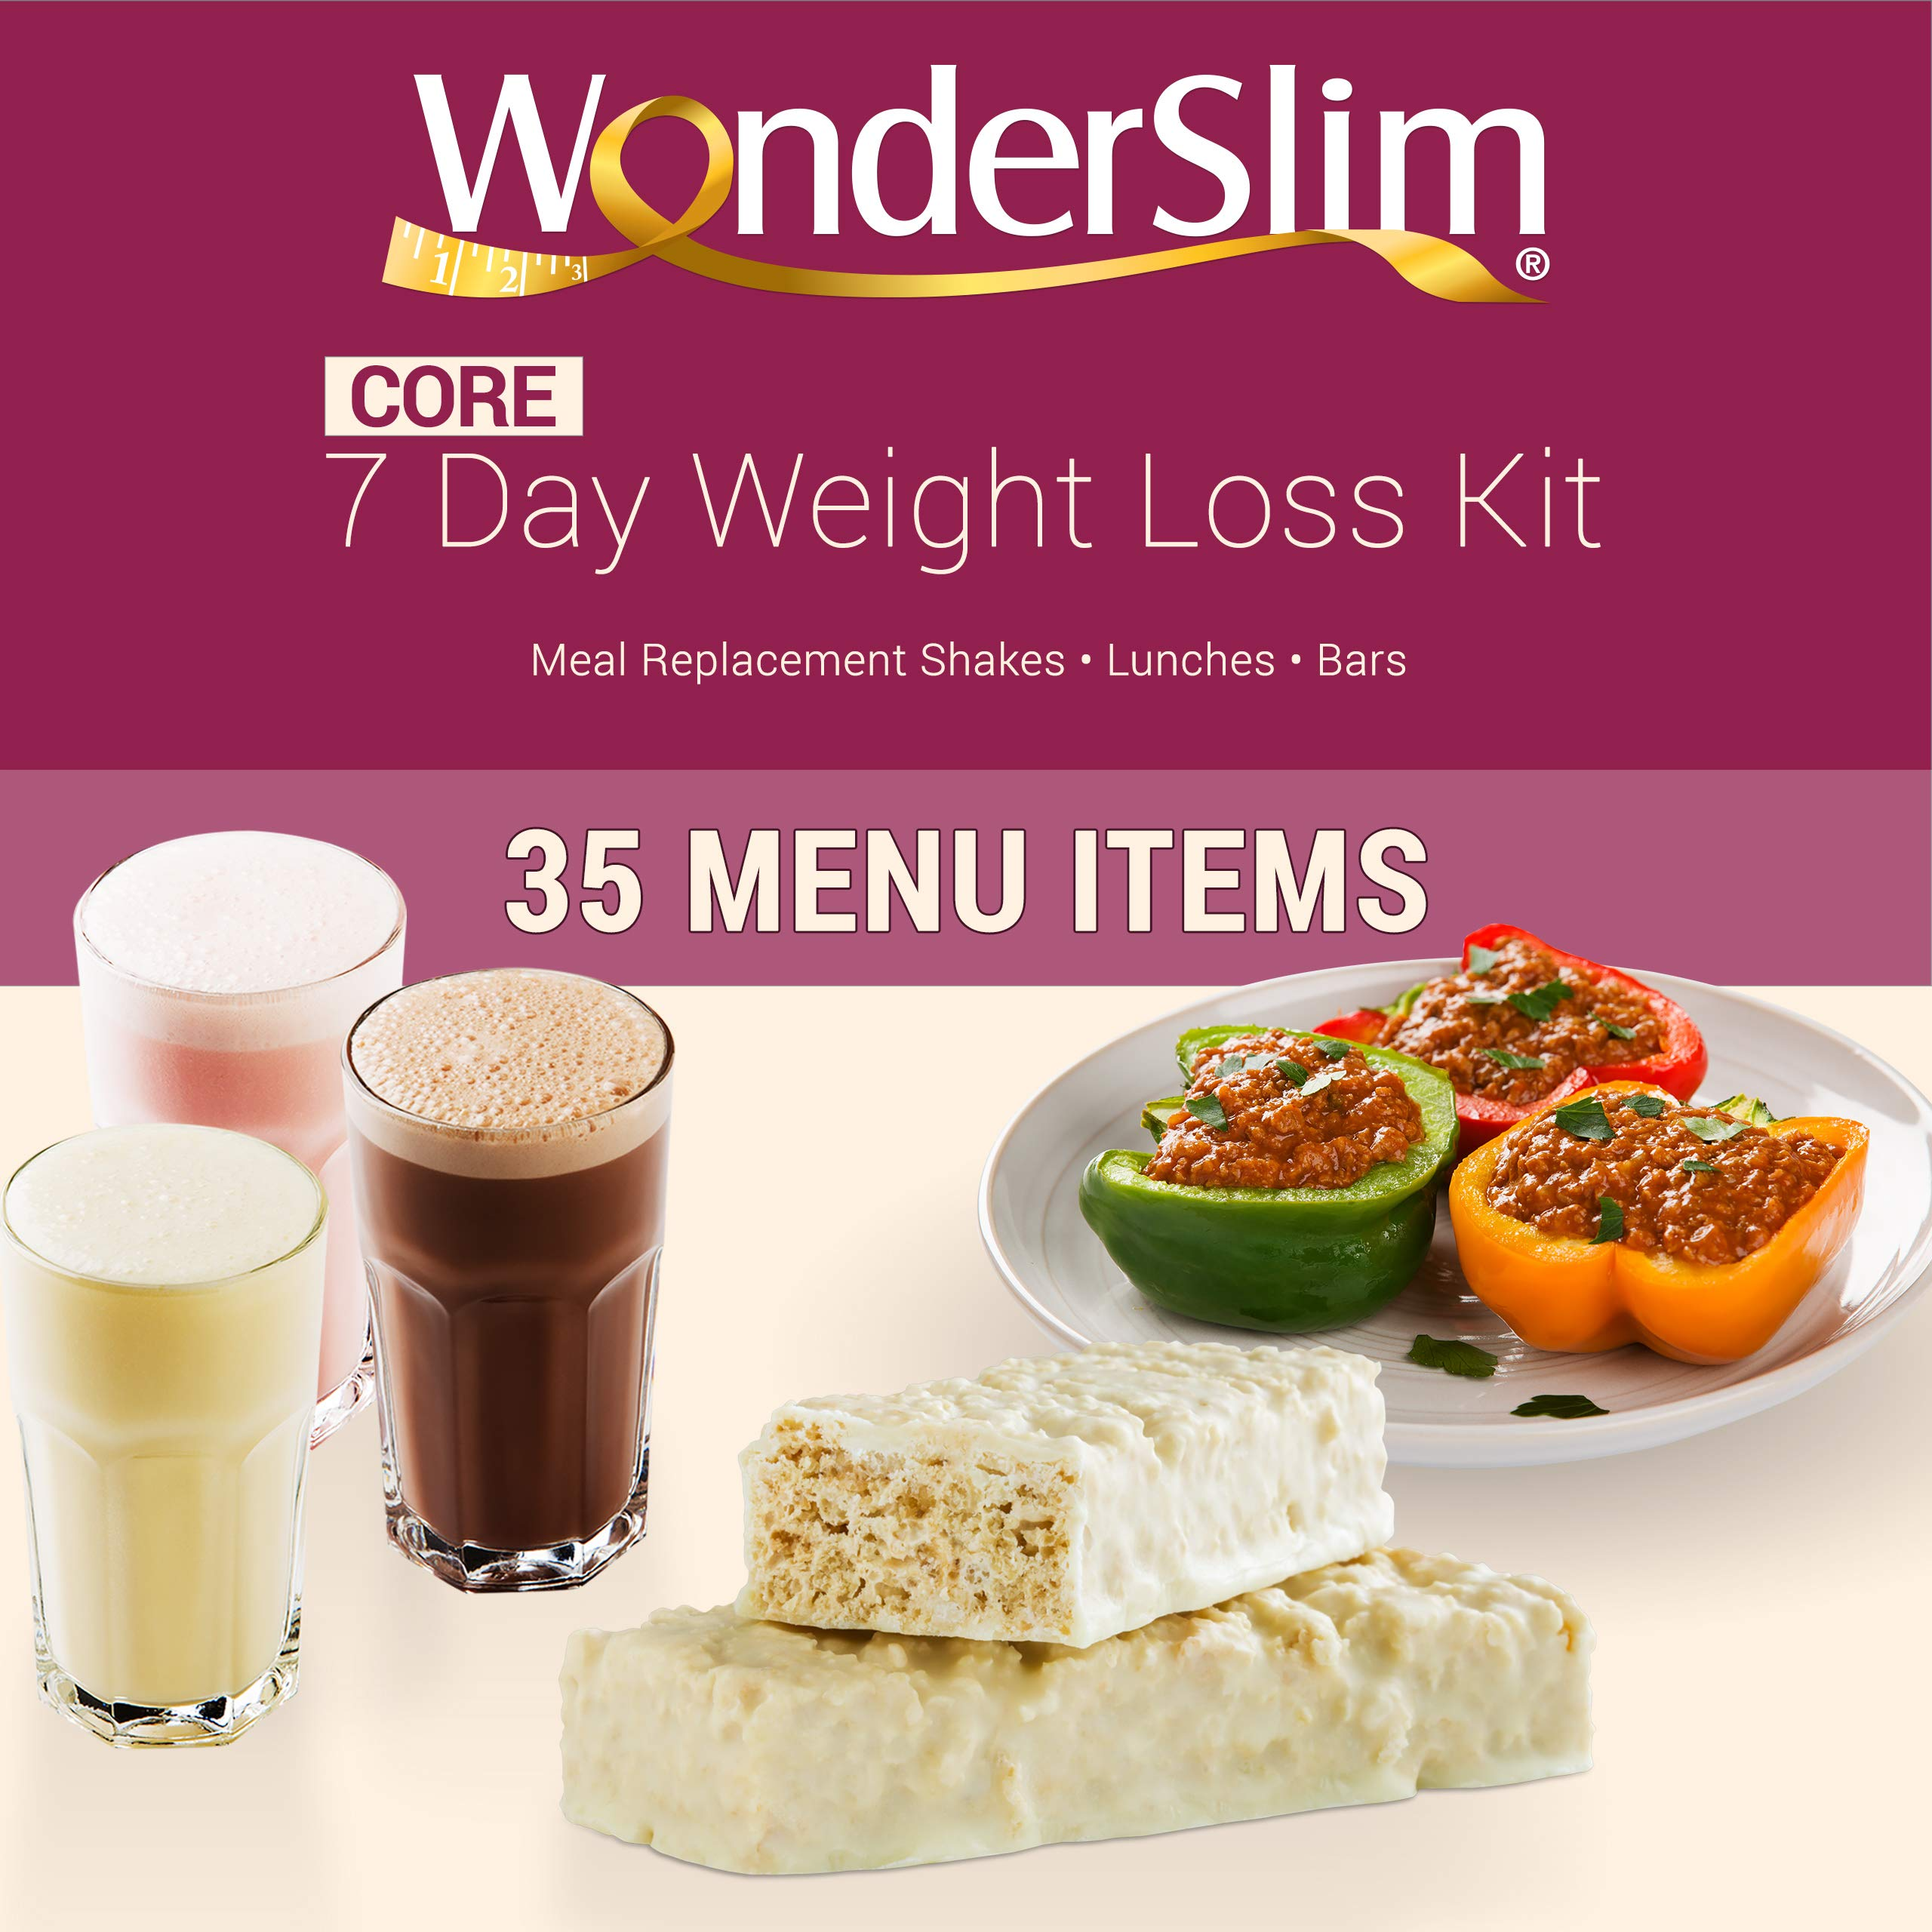 WonderSlim Core 1 Week Diet Kit - Complete Weight Loss Package - Meal Replacements, Protein Supplements, Snacks and Lifestyle Guide by WonderSlim